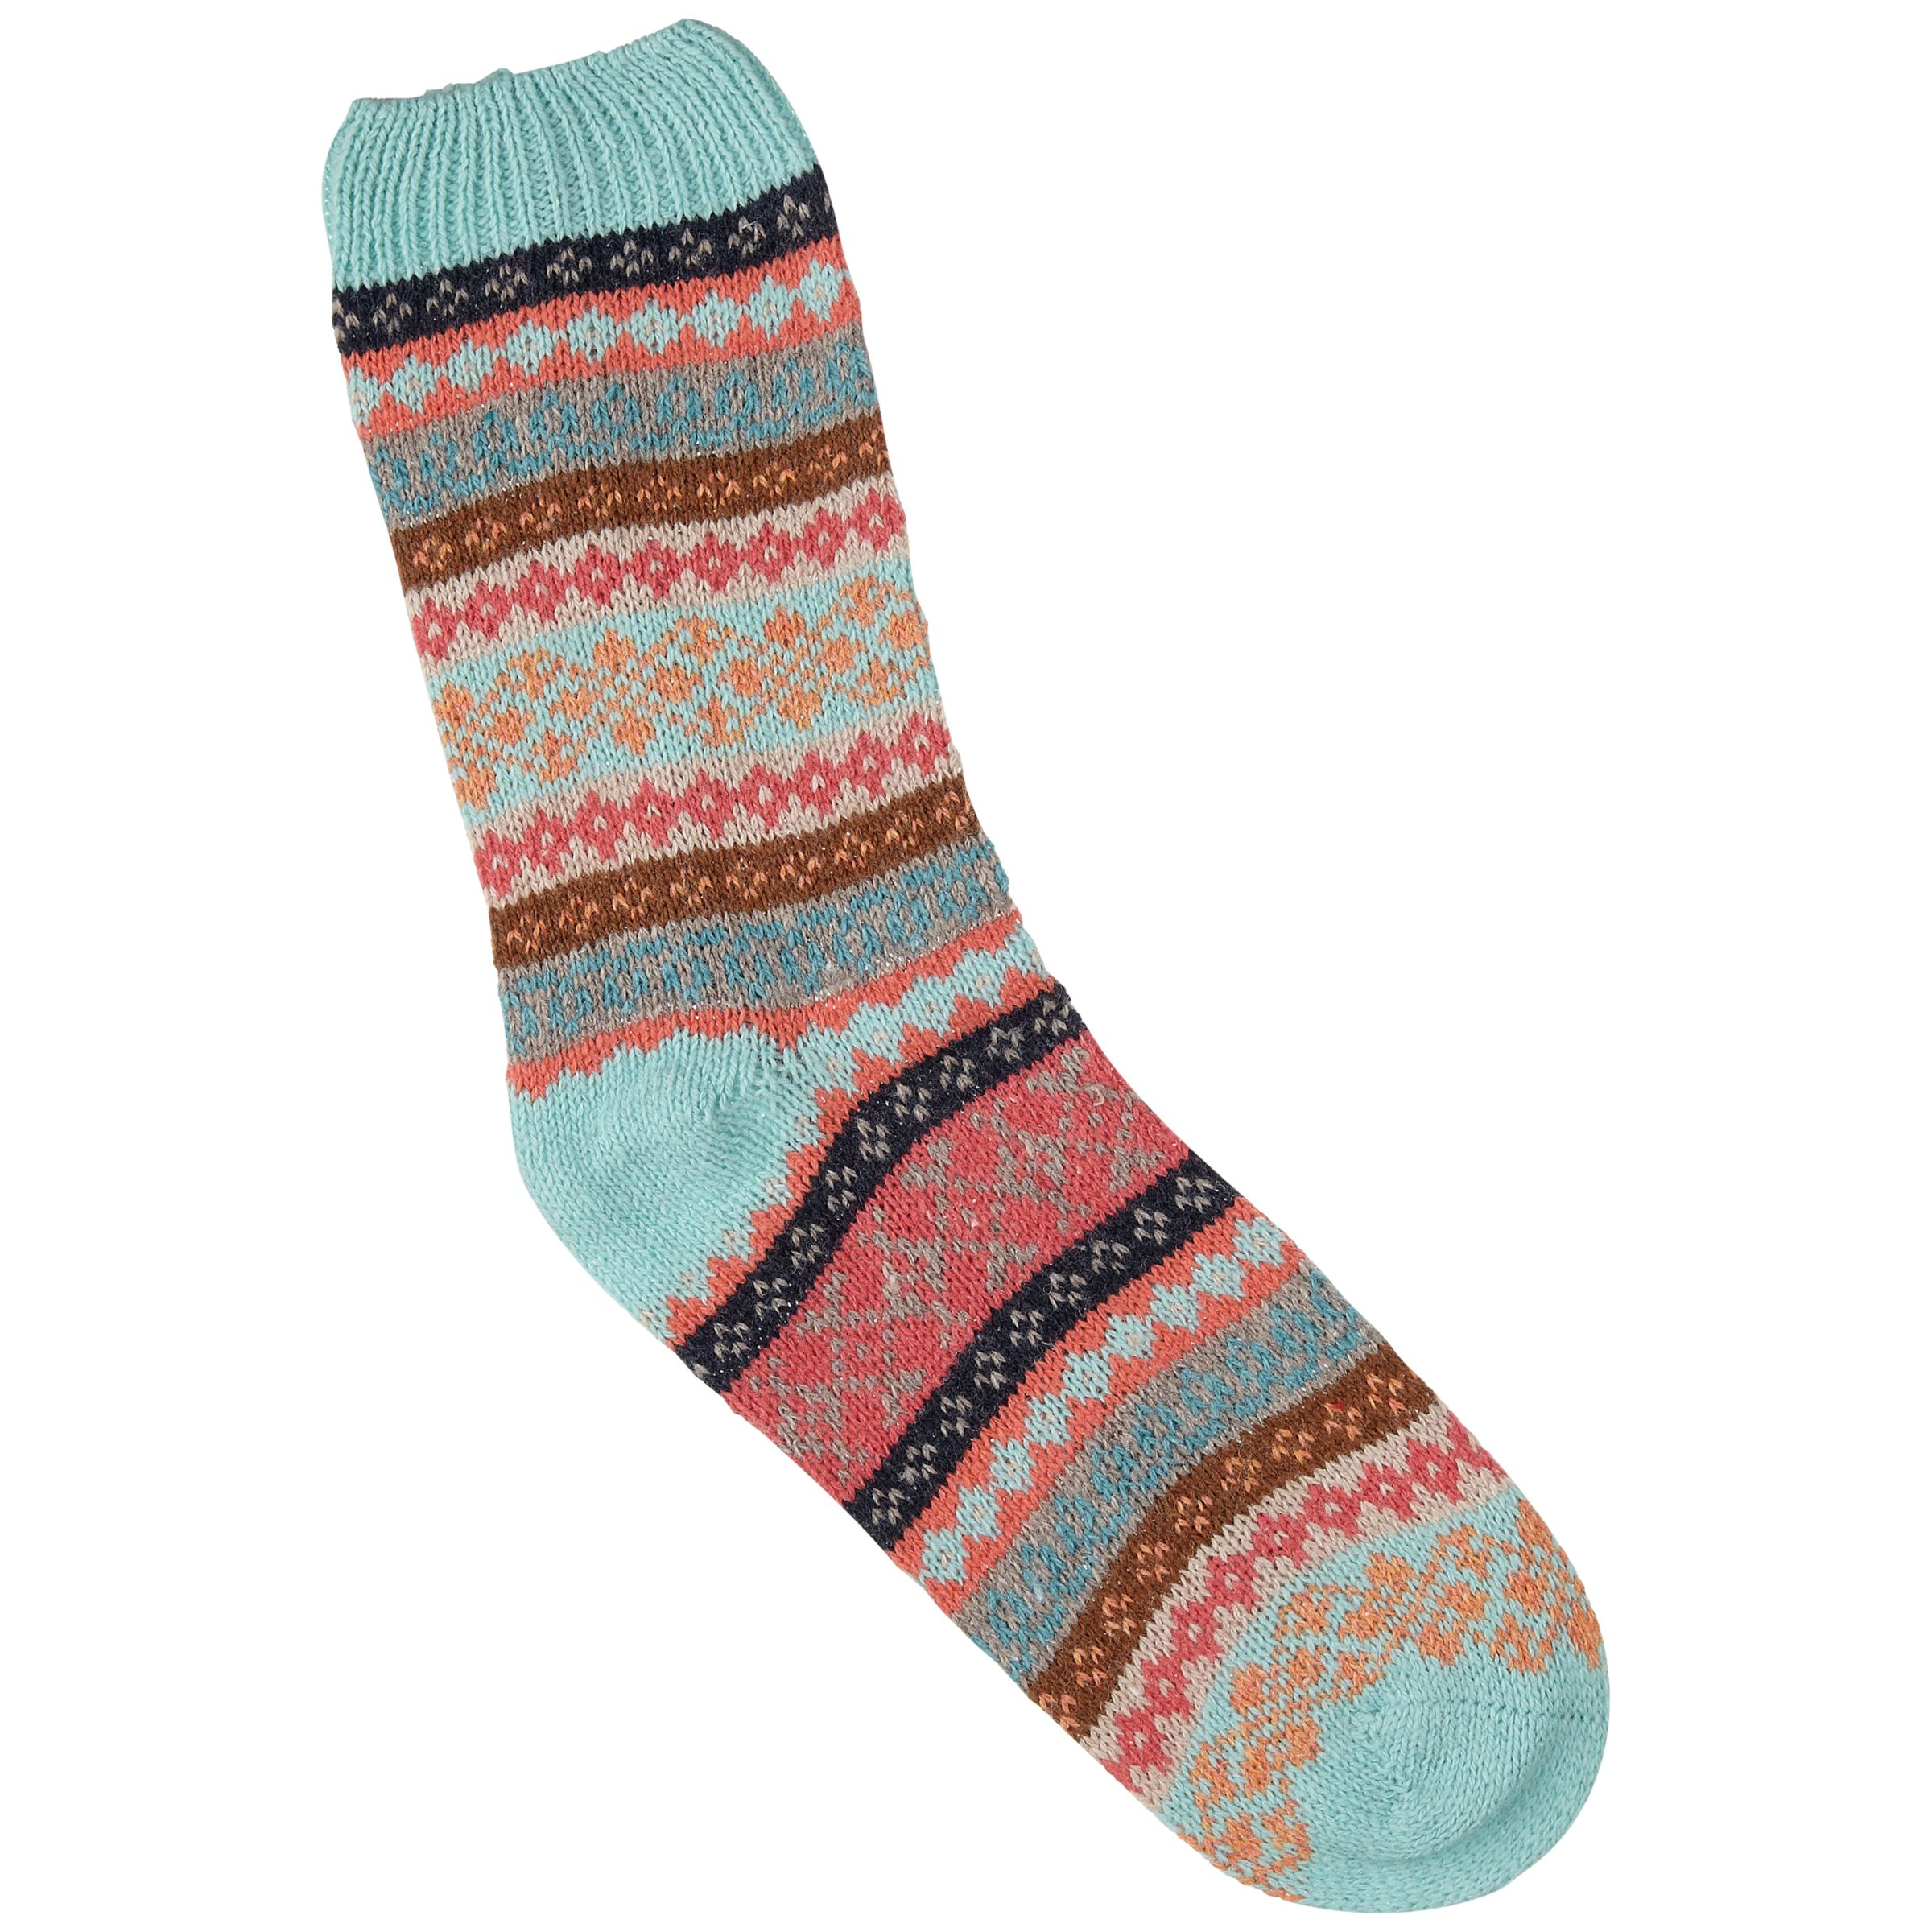 Aroma Home Fairisle Bed Socks, Multi